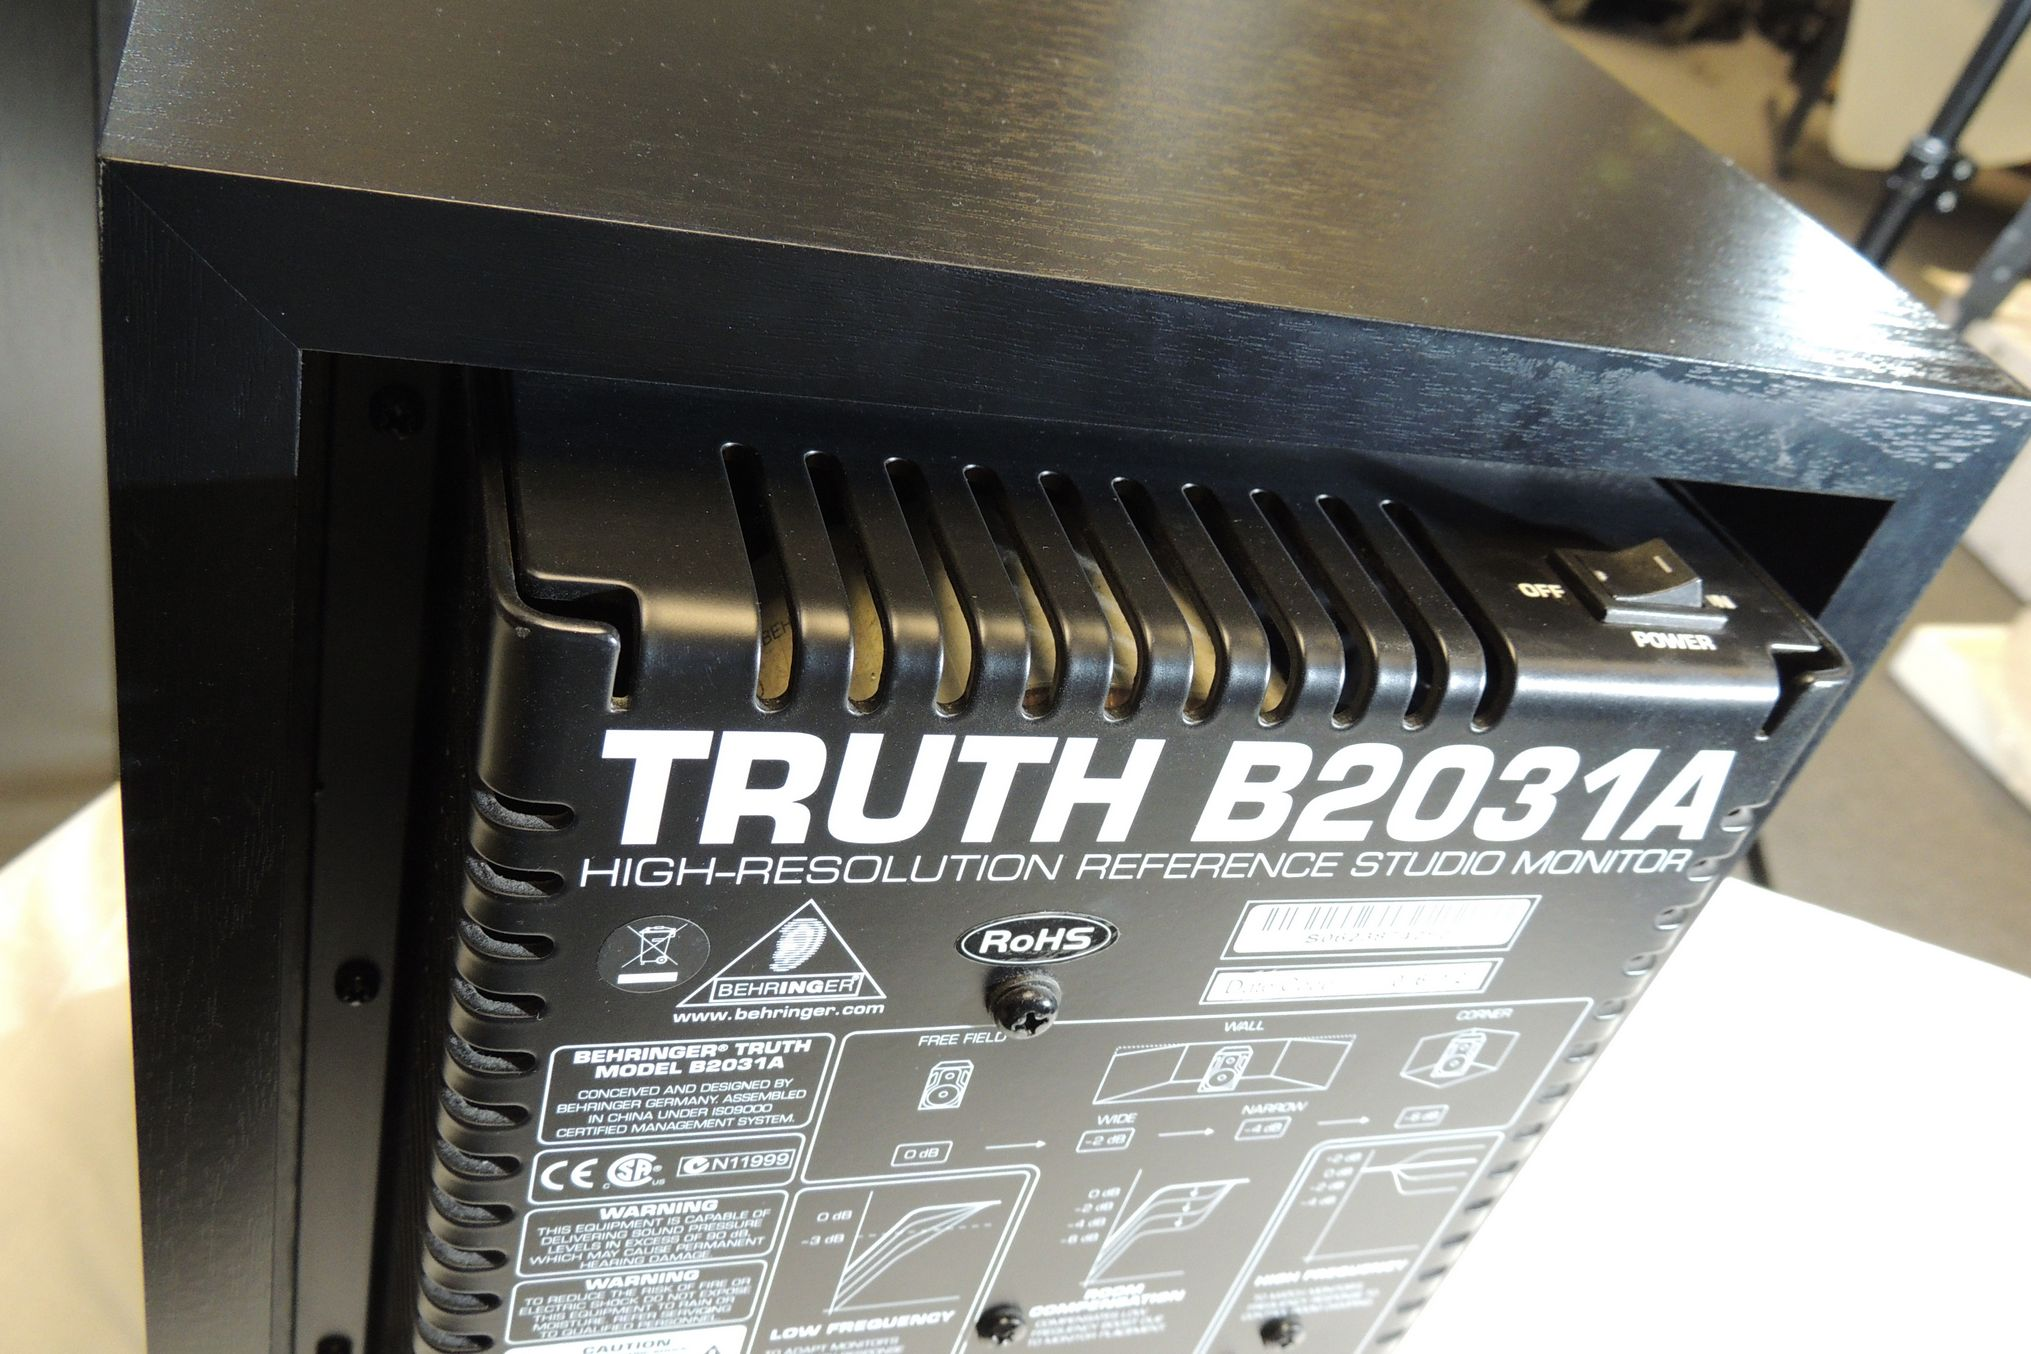 Pair of Behringer Truth B2031A for sale at Plasma Music